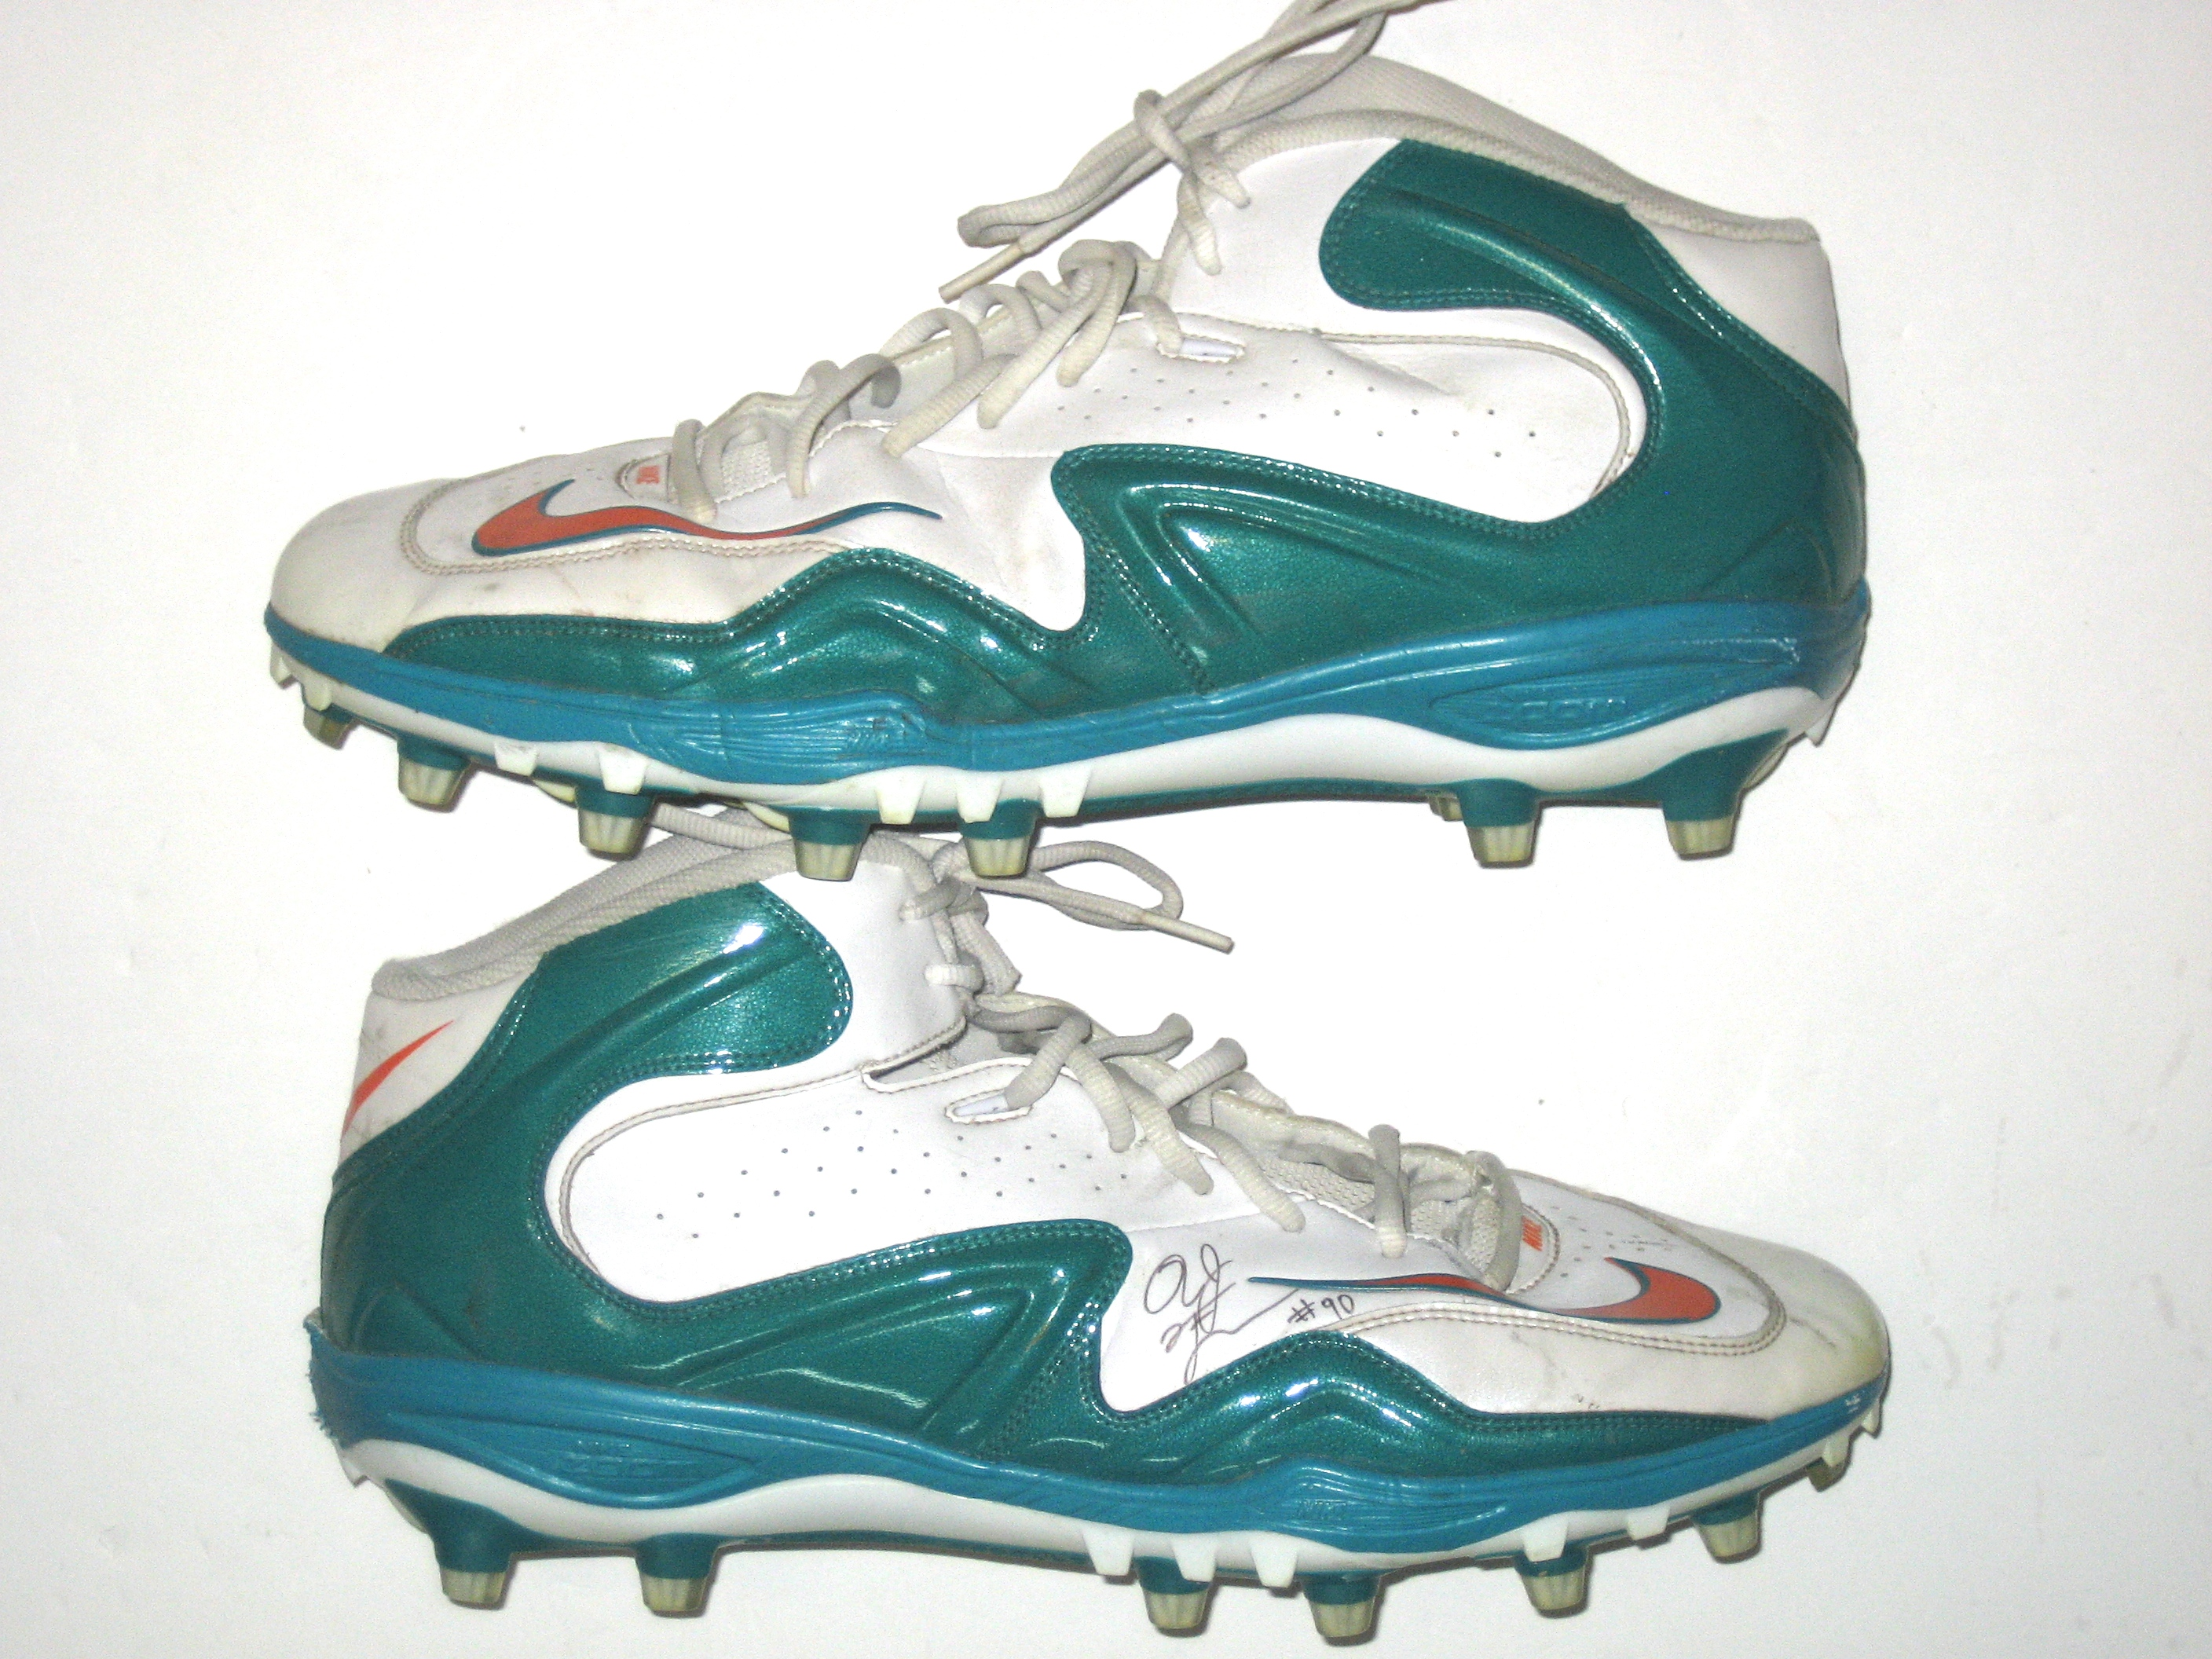 Nike jerseys for sale - AJ Francis Miami Dolphins Game Worn Cleats